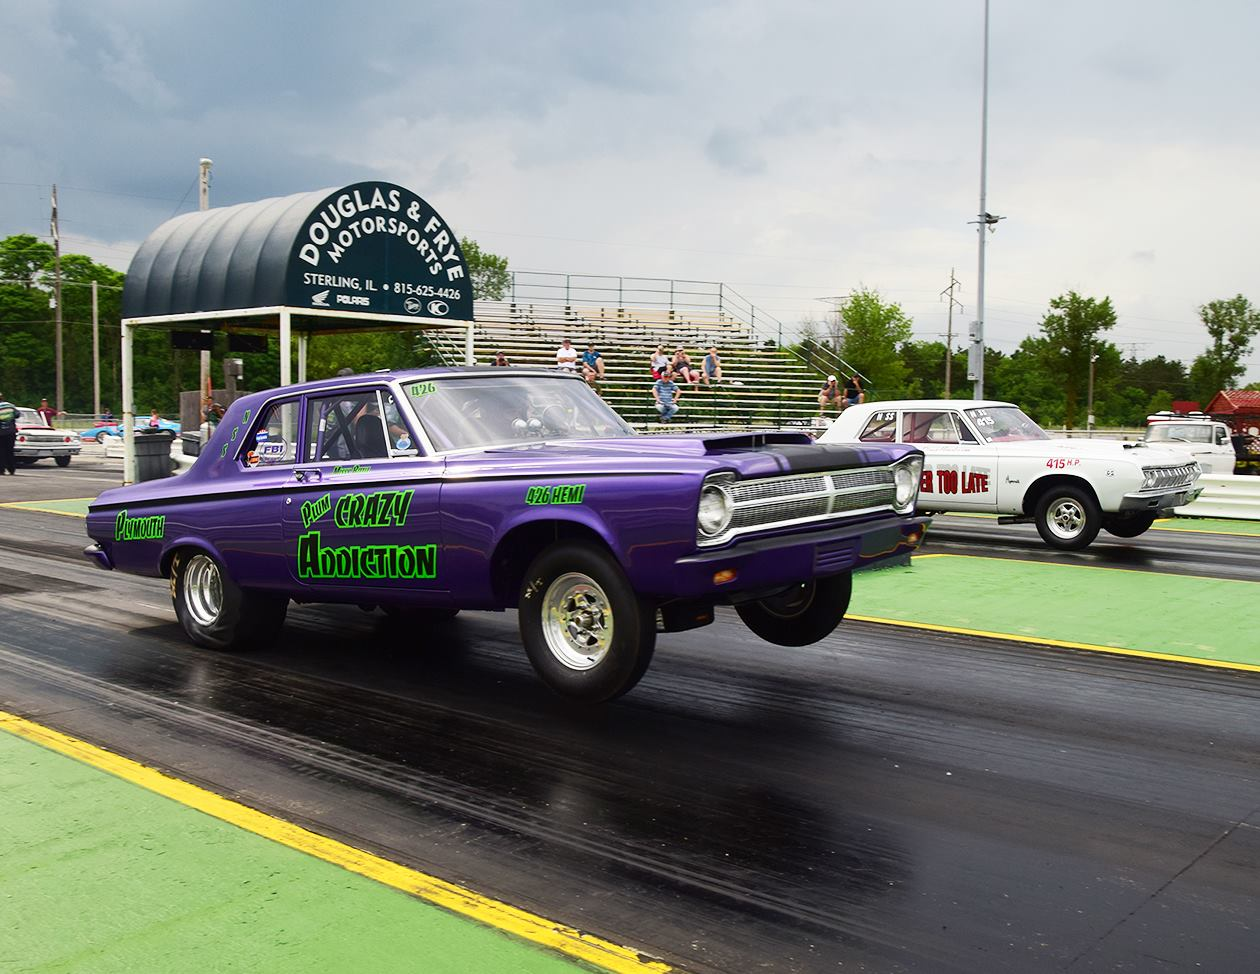 Nostalgia Super Stock Meet Our Members 1964 Dodge 330 Max Wedge Plum Crazy Addiction Is A 1965 426 Hemi Plymouth Belvedere The Car Owned By Marty And Melissa Bittle Of Belleville Il